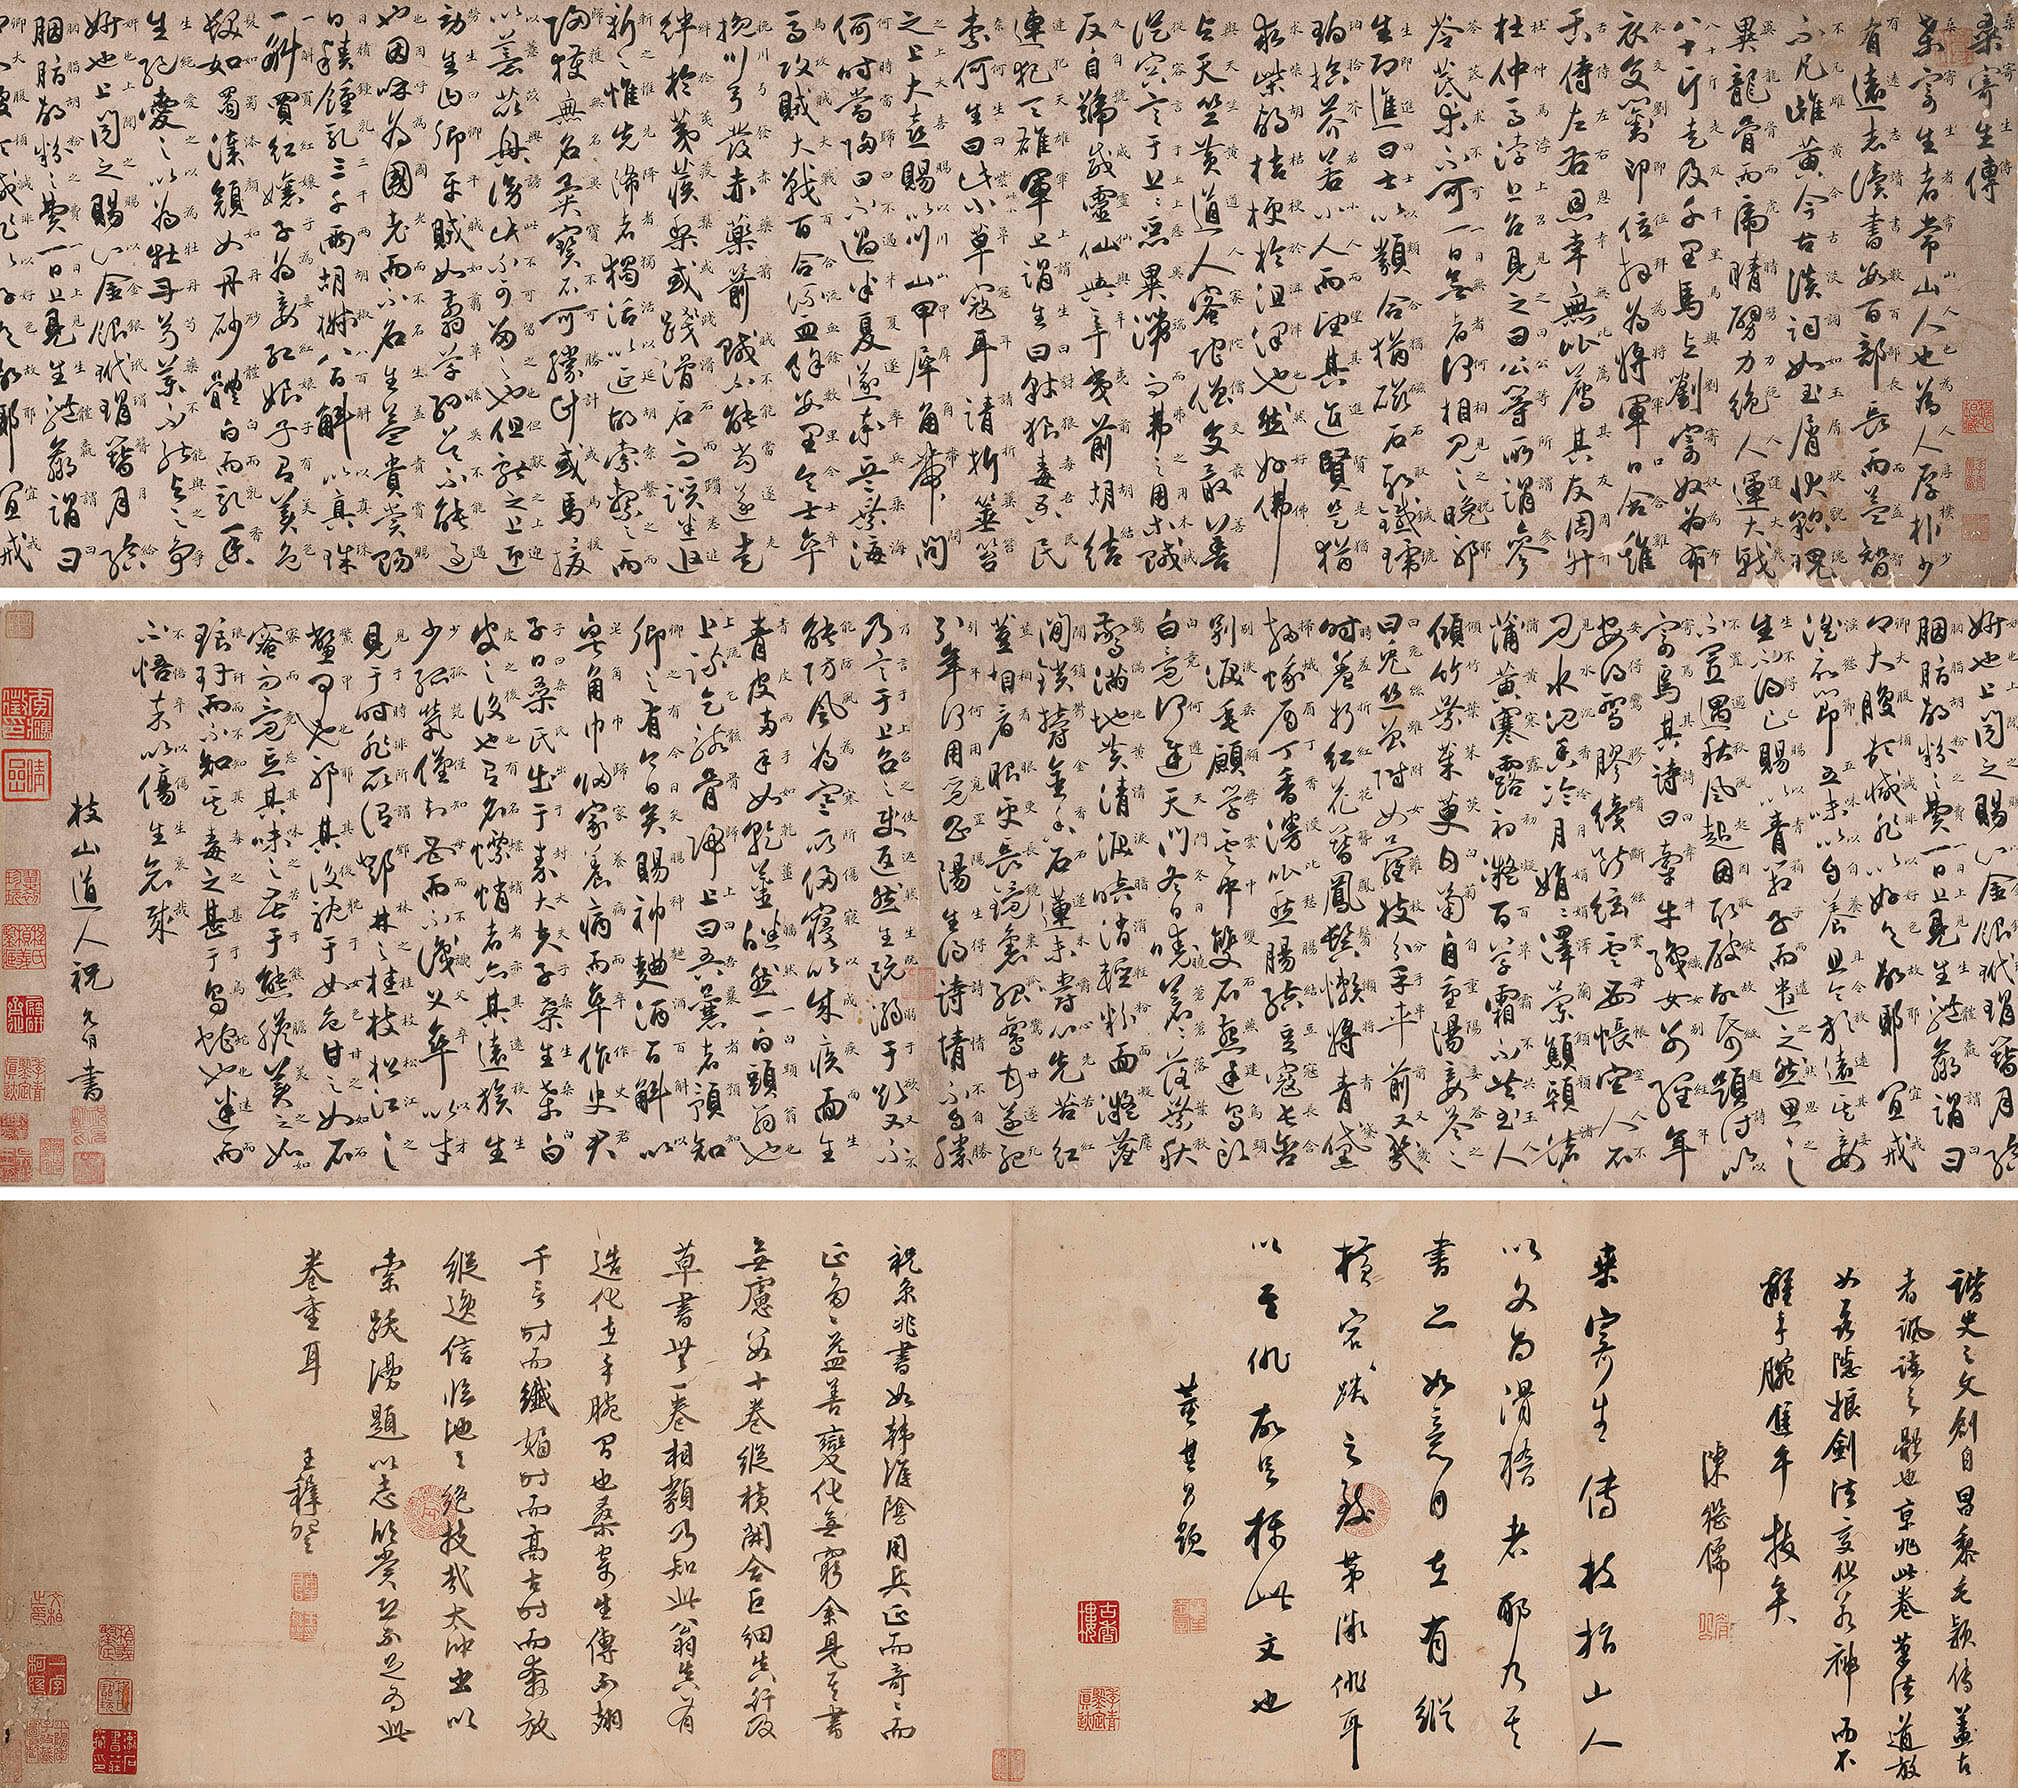 Zhu Yunming (1460-1526), Biography of Mulberry Misletoe. Handscroll, ink on paper. 31.5 X 211 cm. (12 ⅜ x 83 ⅛ in.). Estimate HK$ 10,000,000 - 15,000,000. Offered in Fine Chinese Classical Paintings and Calligraphy on 2 December at Christie's in Hong Kong.